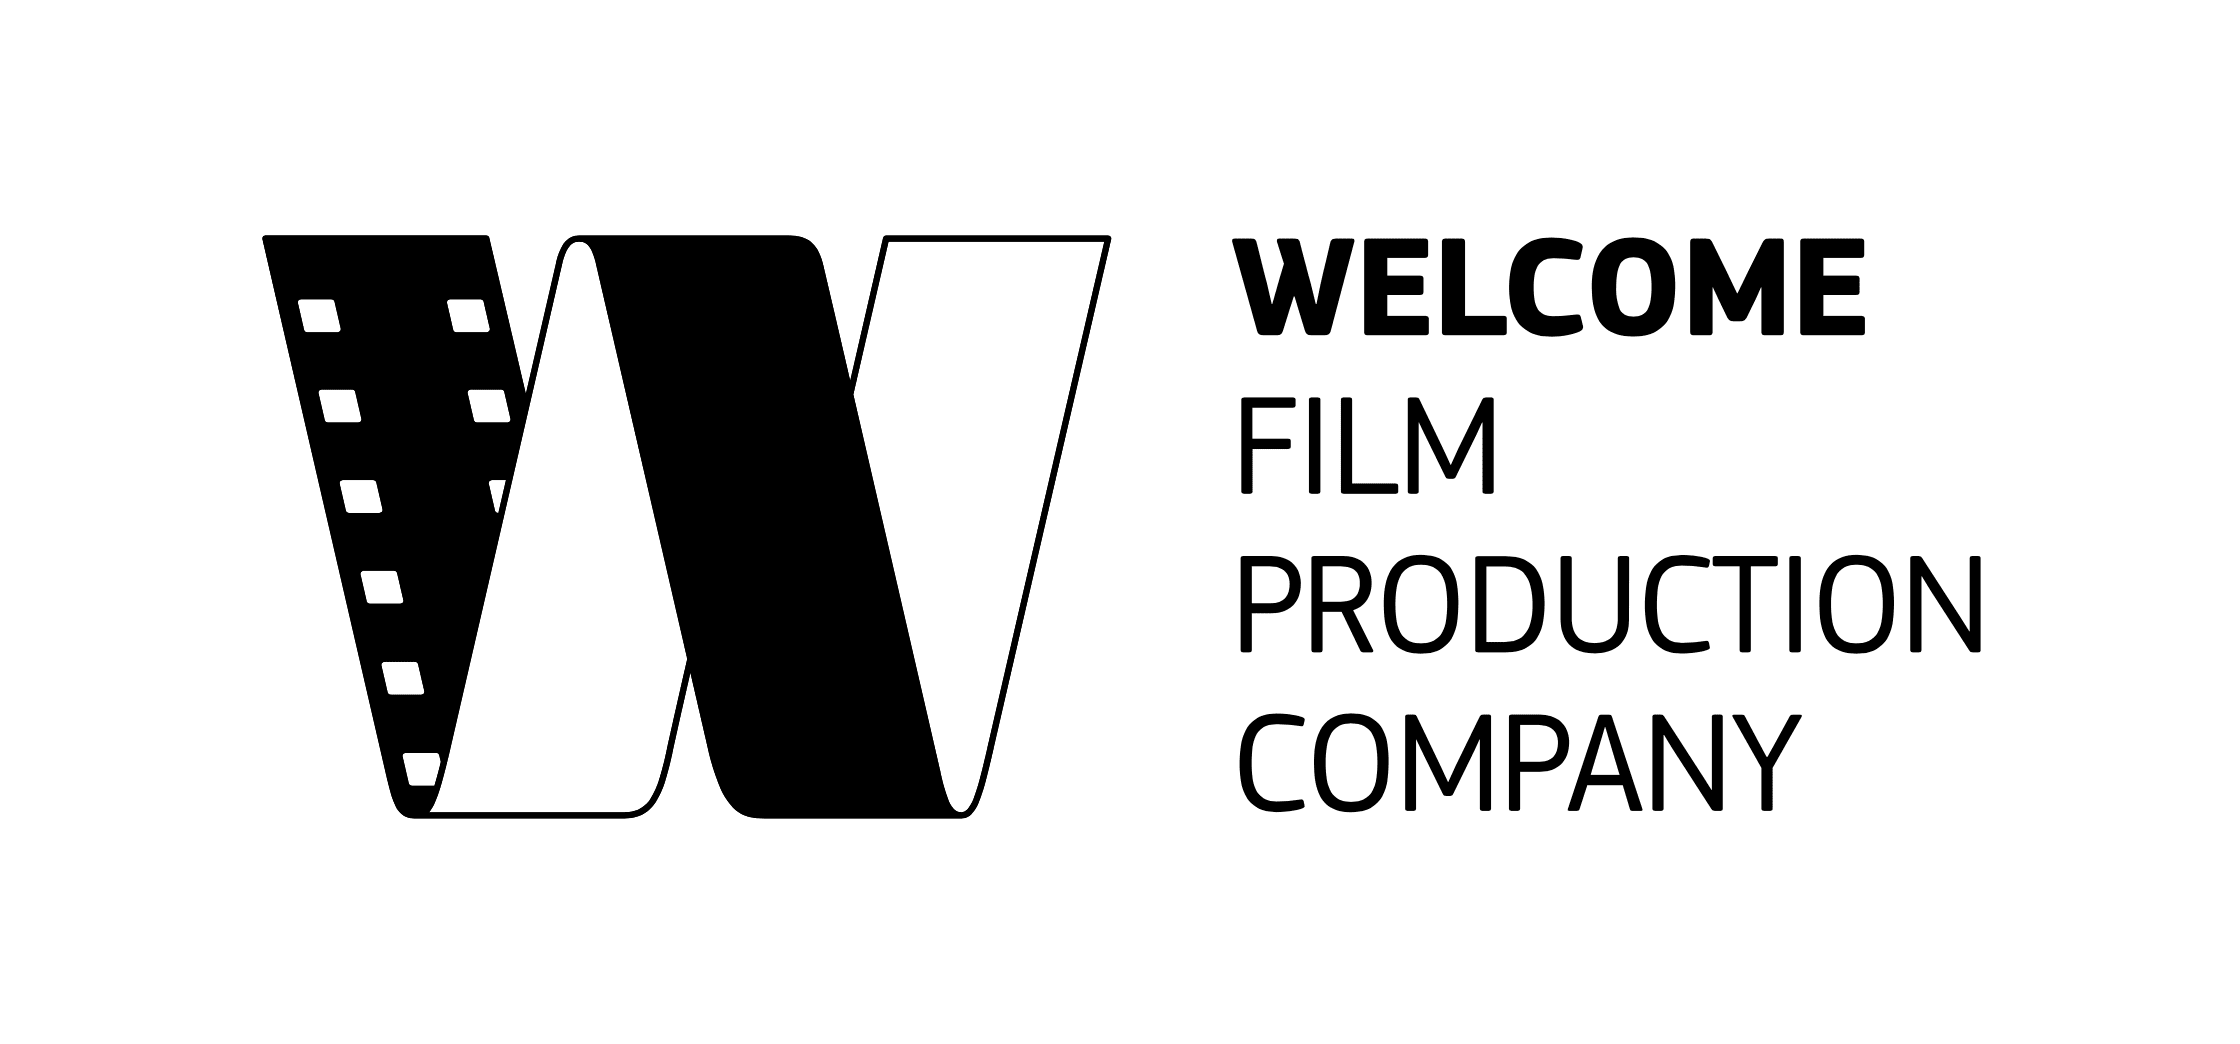 Welcome Production